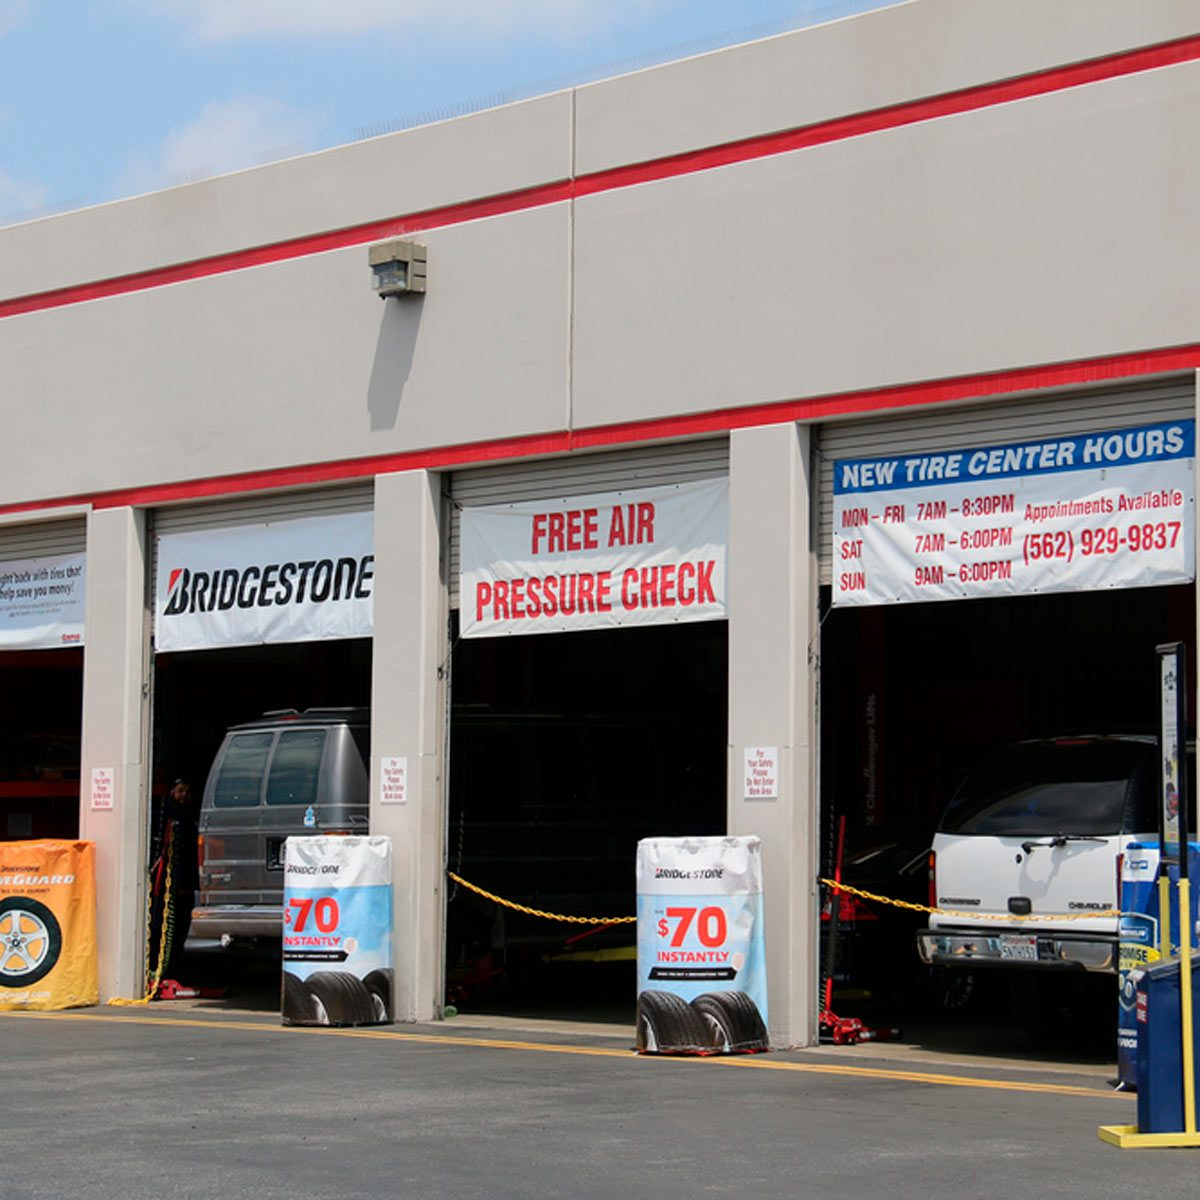 10 Ways To Save Money On Your Car At Costco